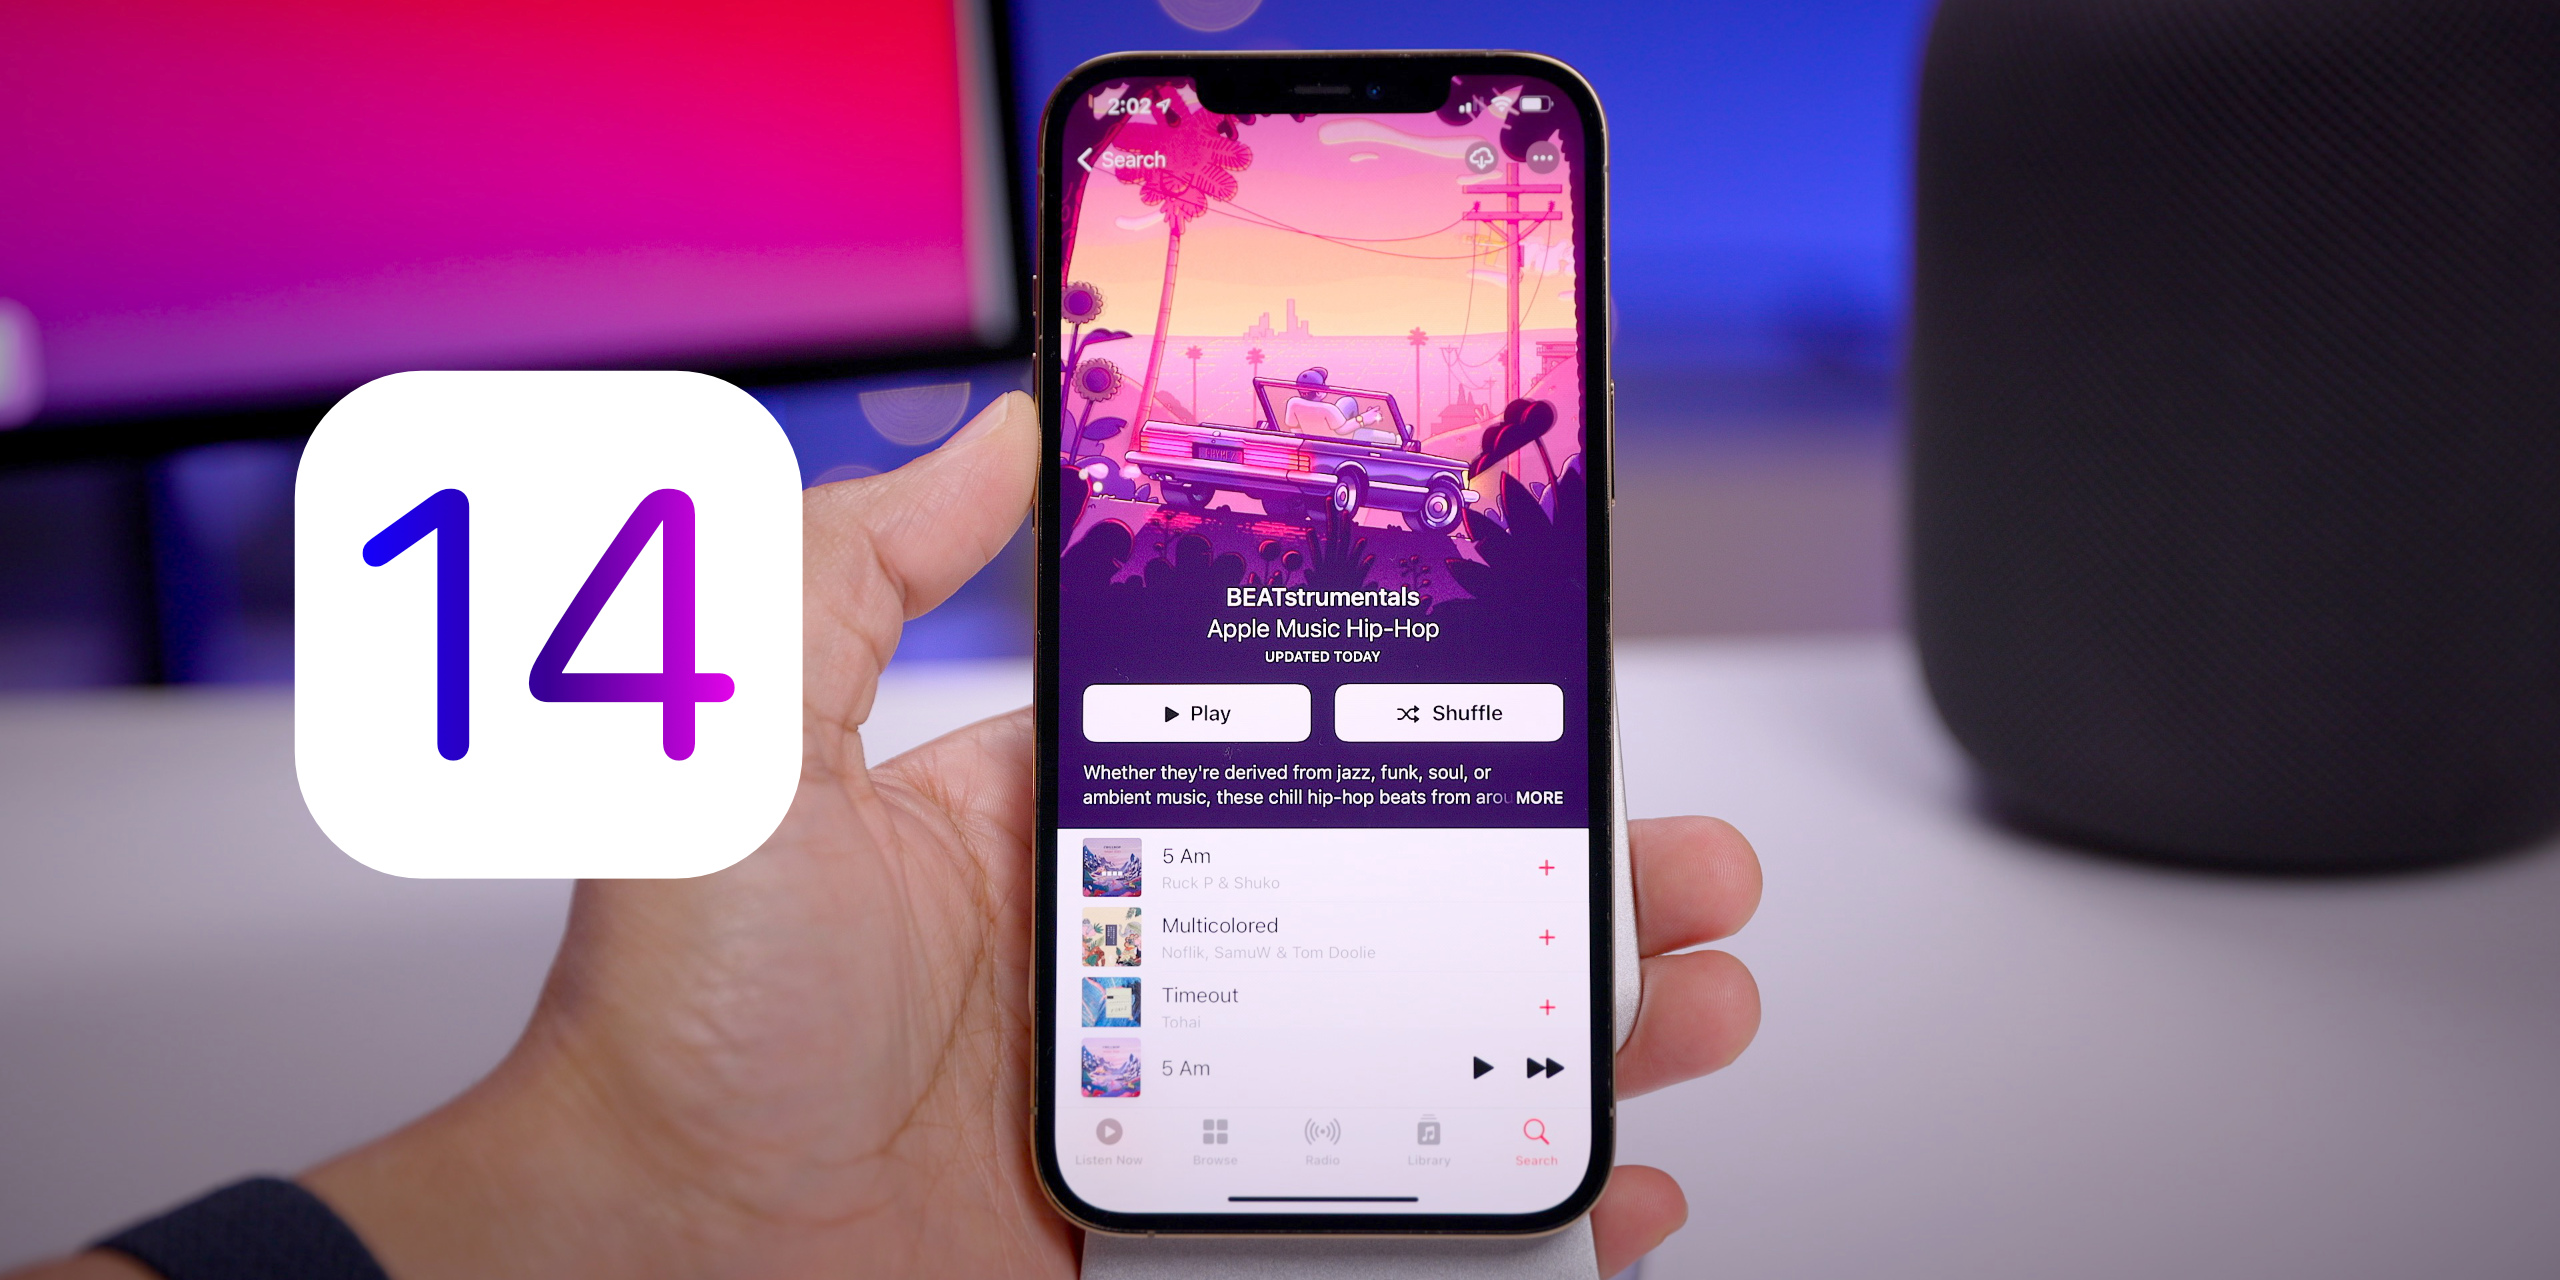 Apple releases first beta of iOS 14.5, watchOS 7.4, and more to developers  - 9to5Mac